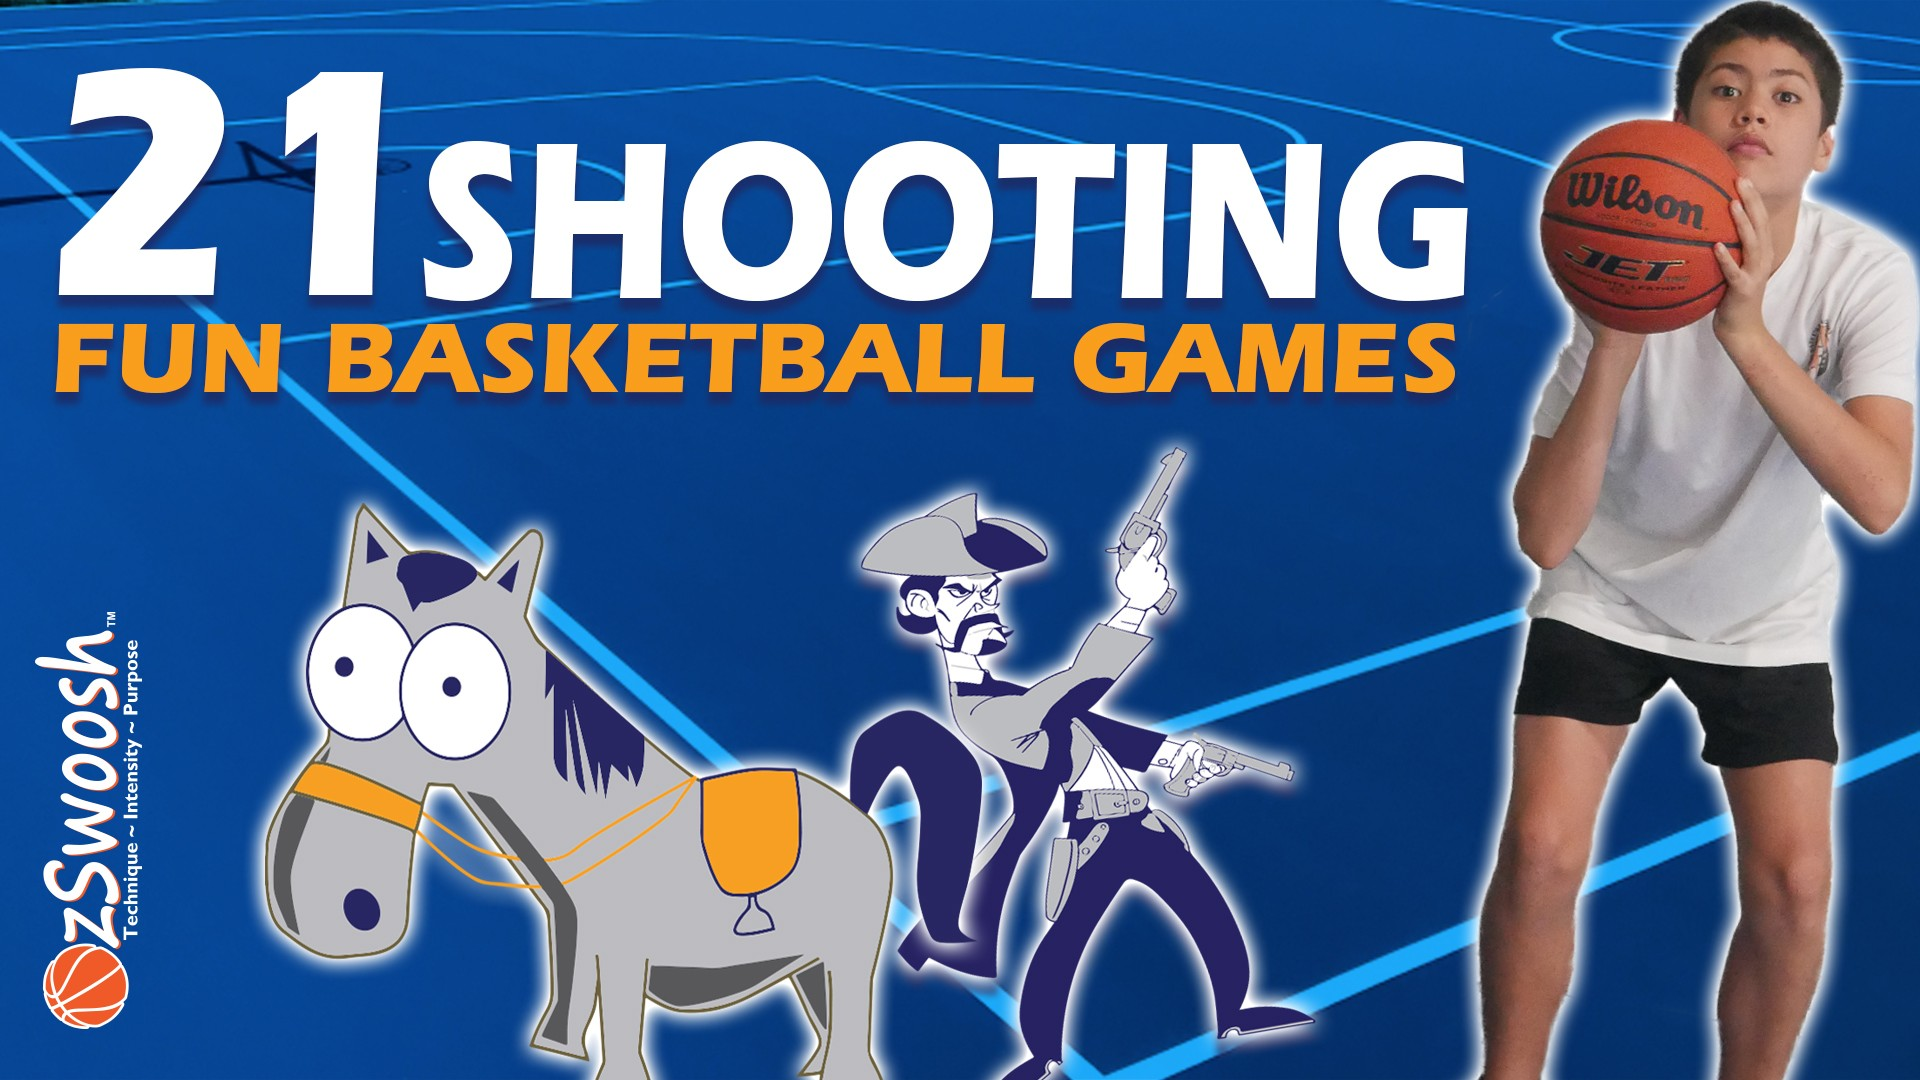 Fun Youth Basketball Games For Kids - 21 (Shooting Drill)